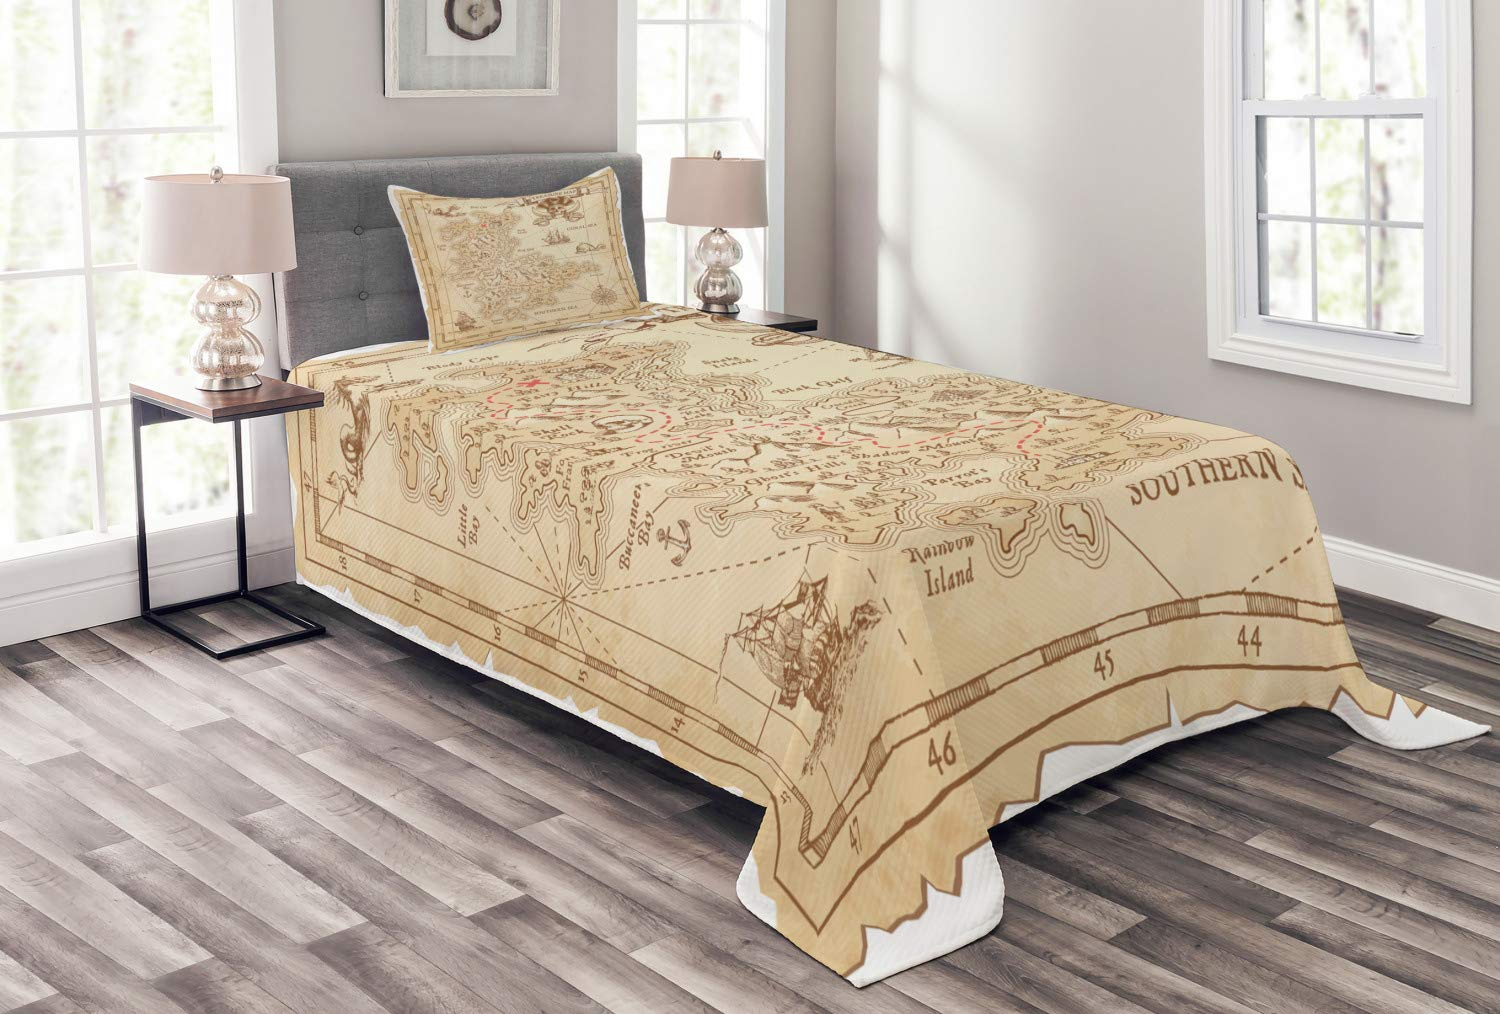 Ambesonne Island Bedspread, Old Antique Treasure Map with Details Retro Color Adventure Sailing Pirate Print, Decorative Quilted 2 Piece Coverlet Set with Pillow Sham, Twin Size, Cream